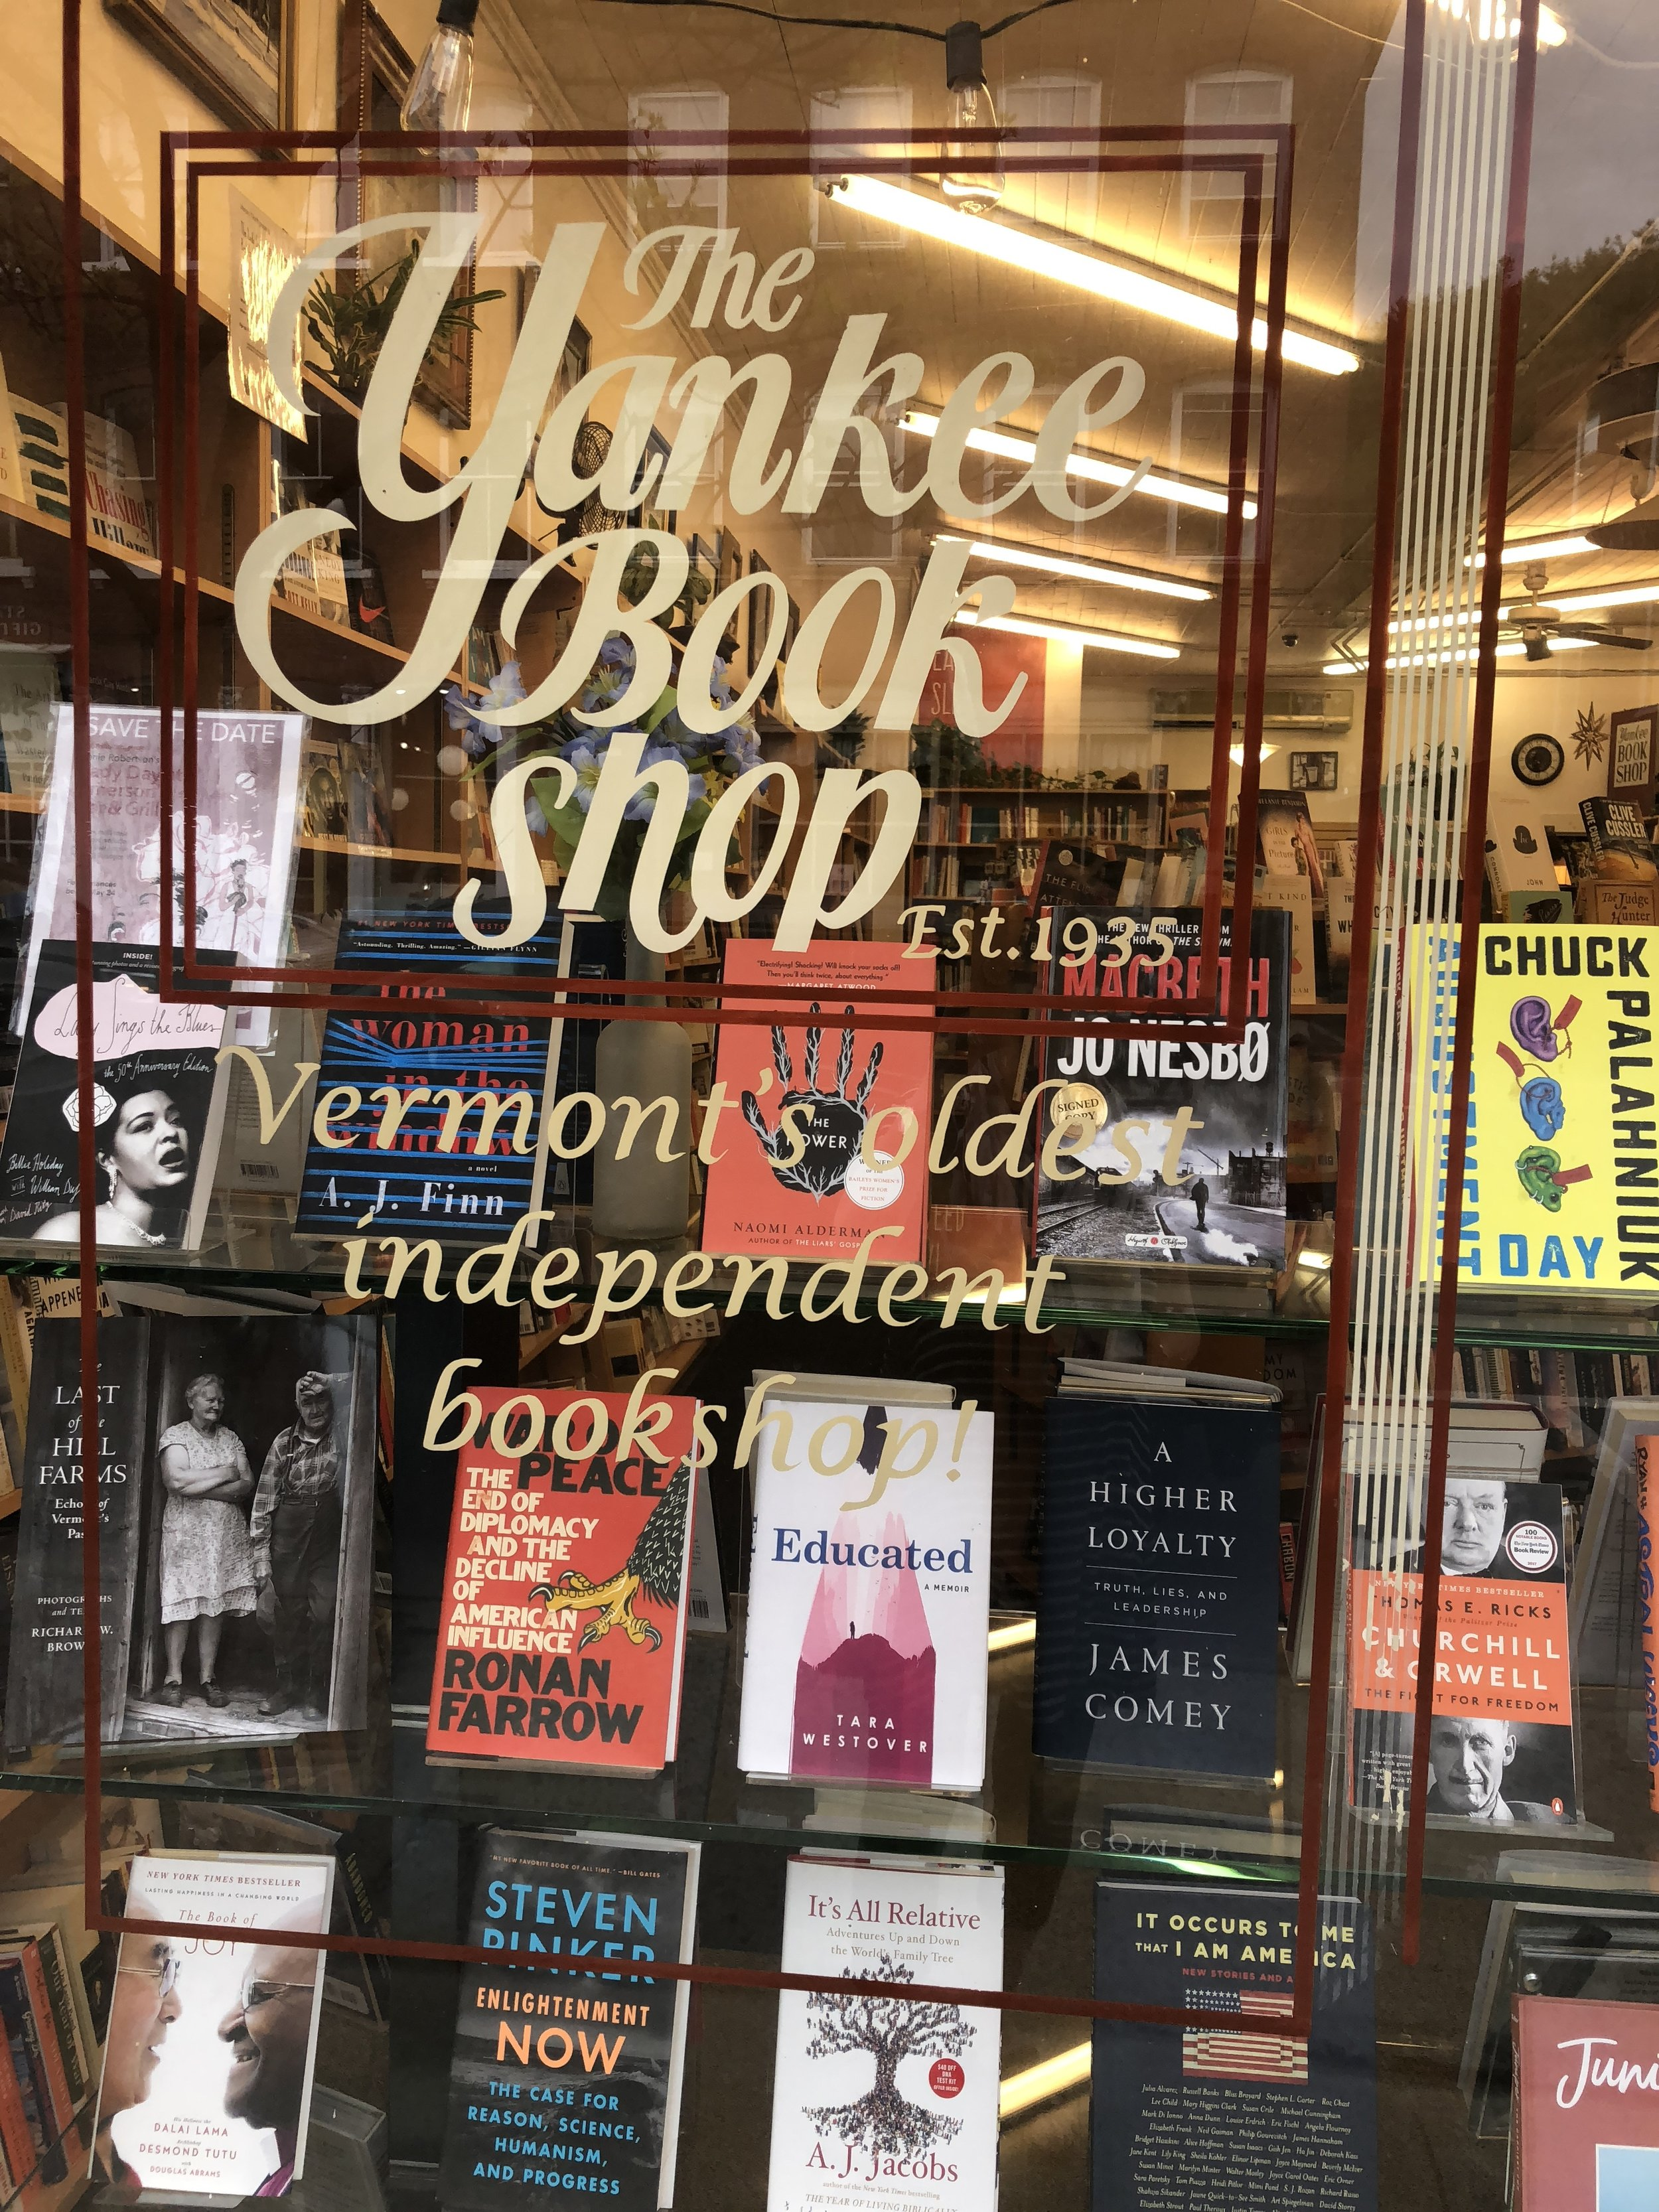 We are collecting independent bookstore like this one in Woodstock, VT.